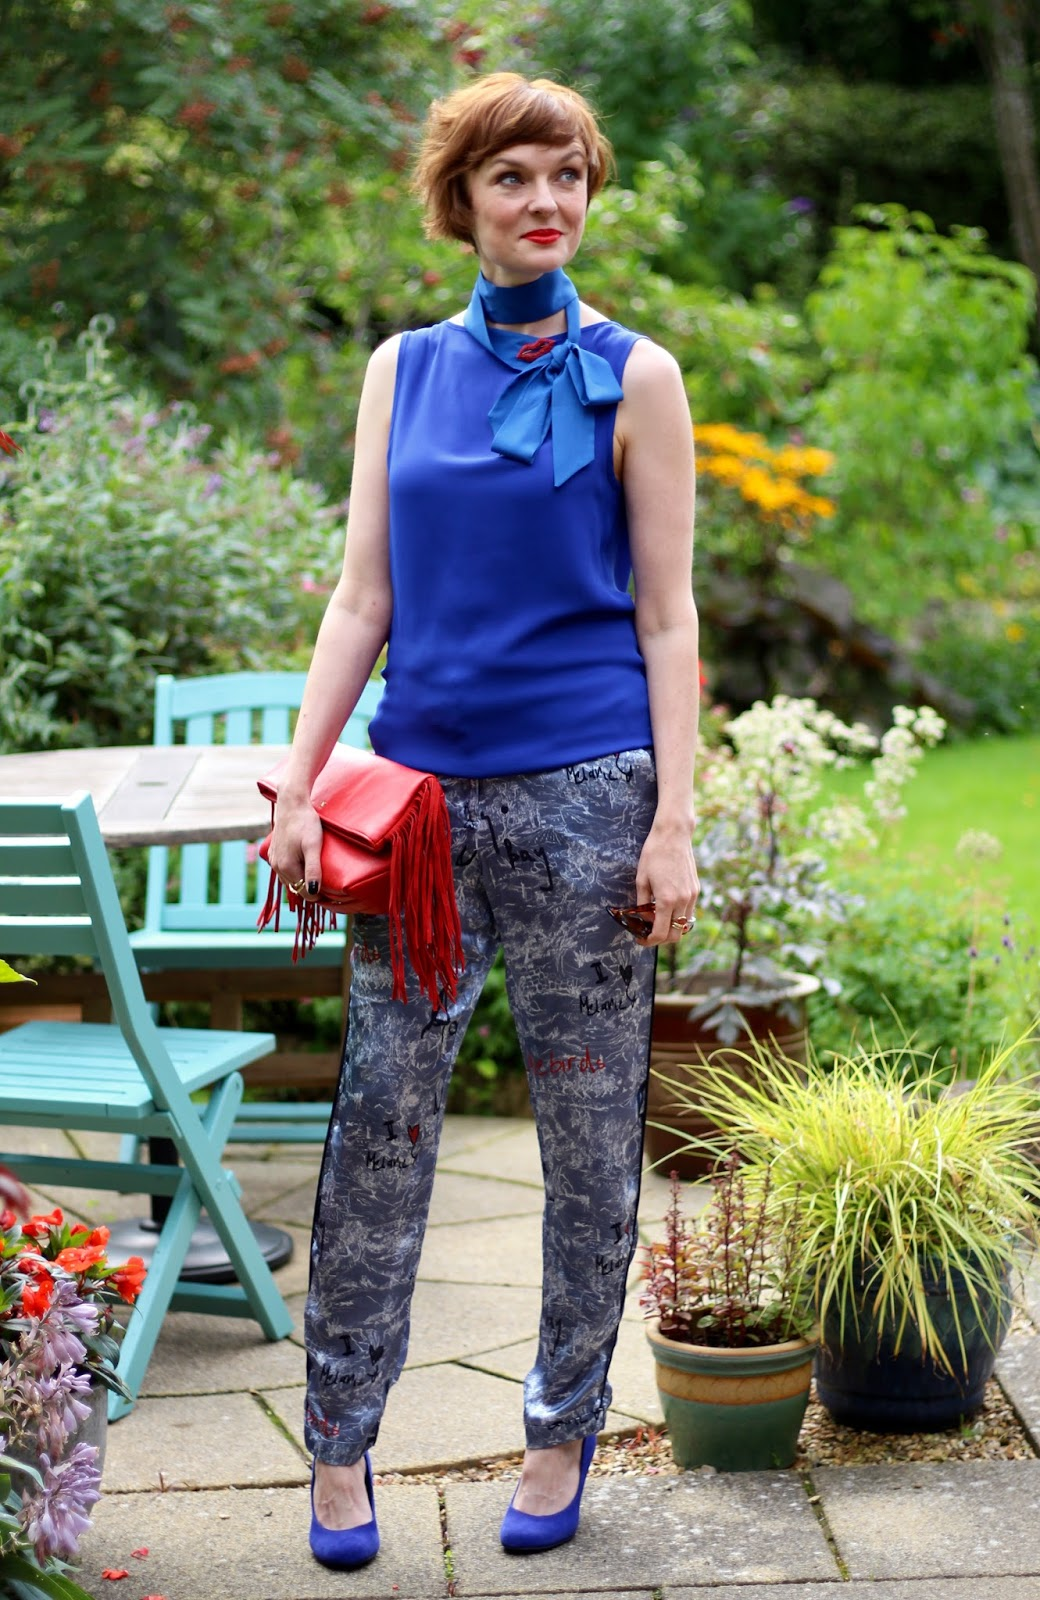 Fake Fabulous | Cobalt blue top (worn back to front), pyjama trousers, red lips and blue heels.